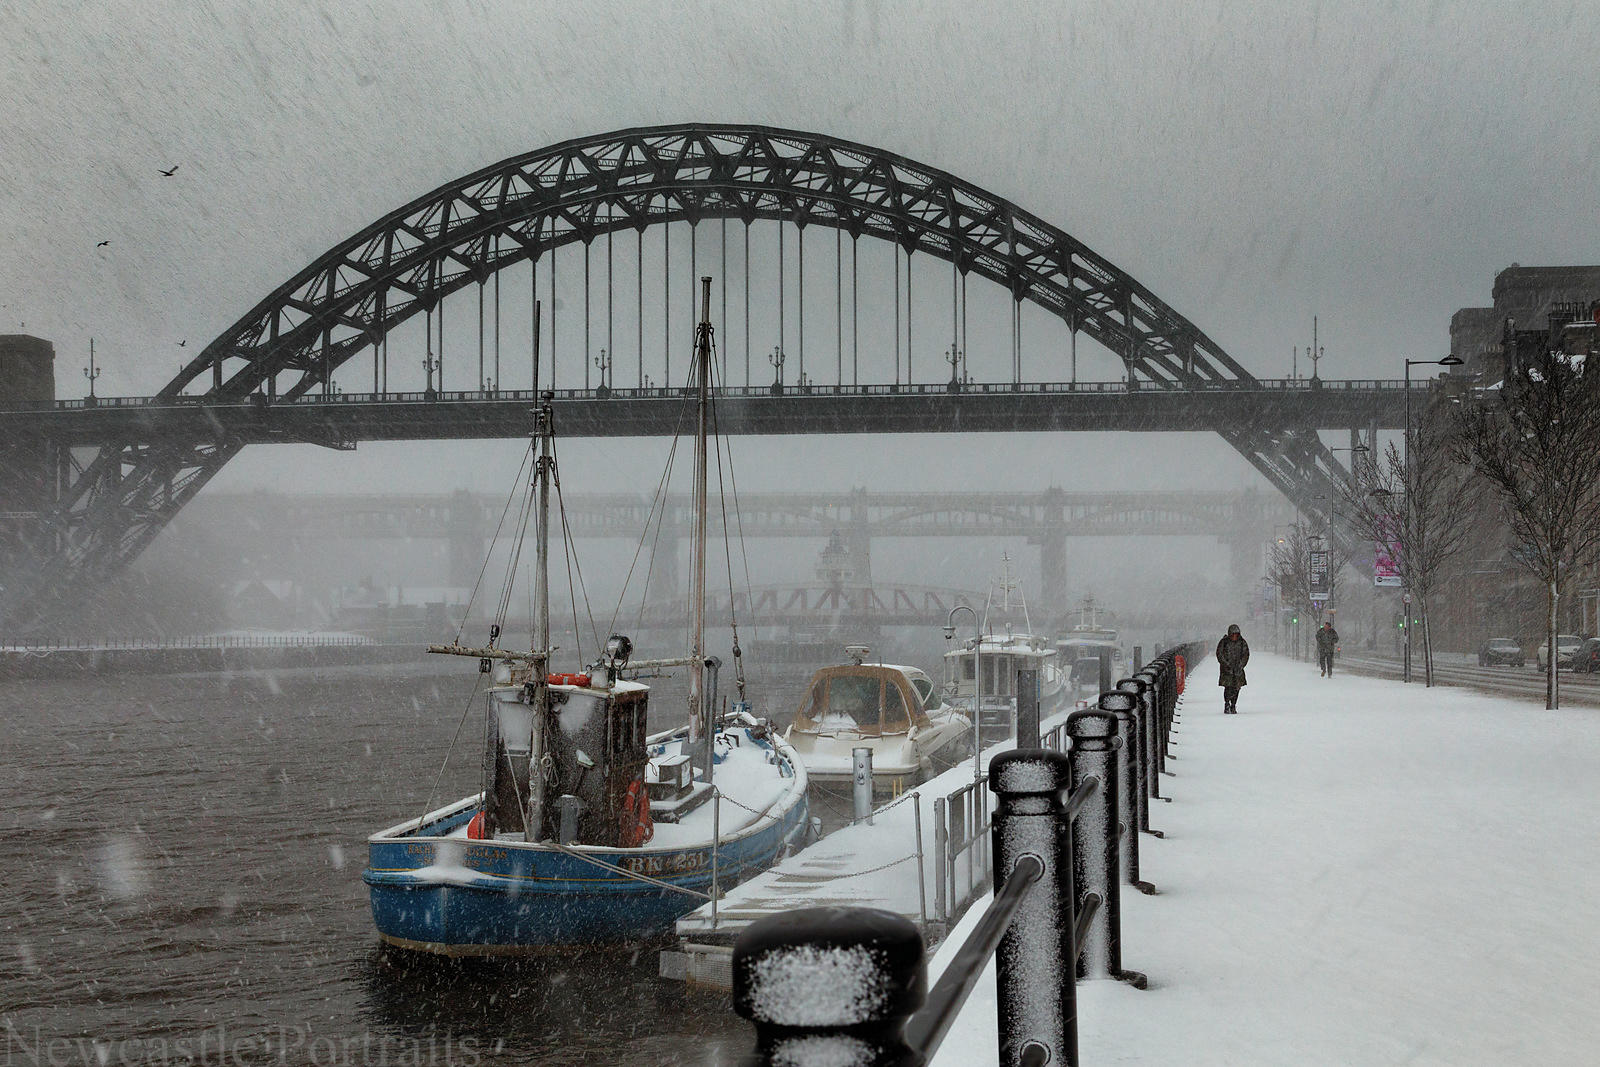 Snow on the Tyne